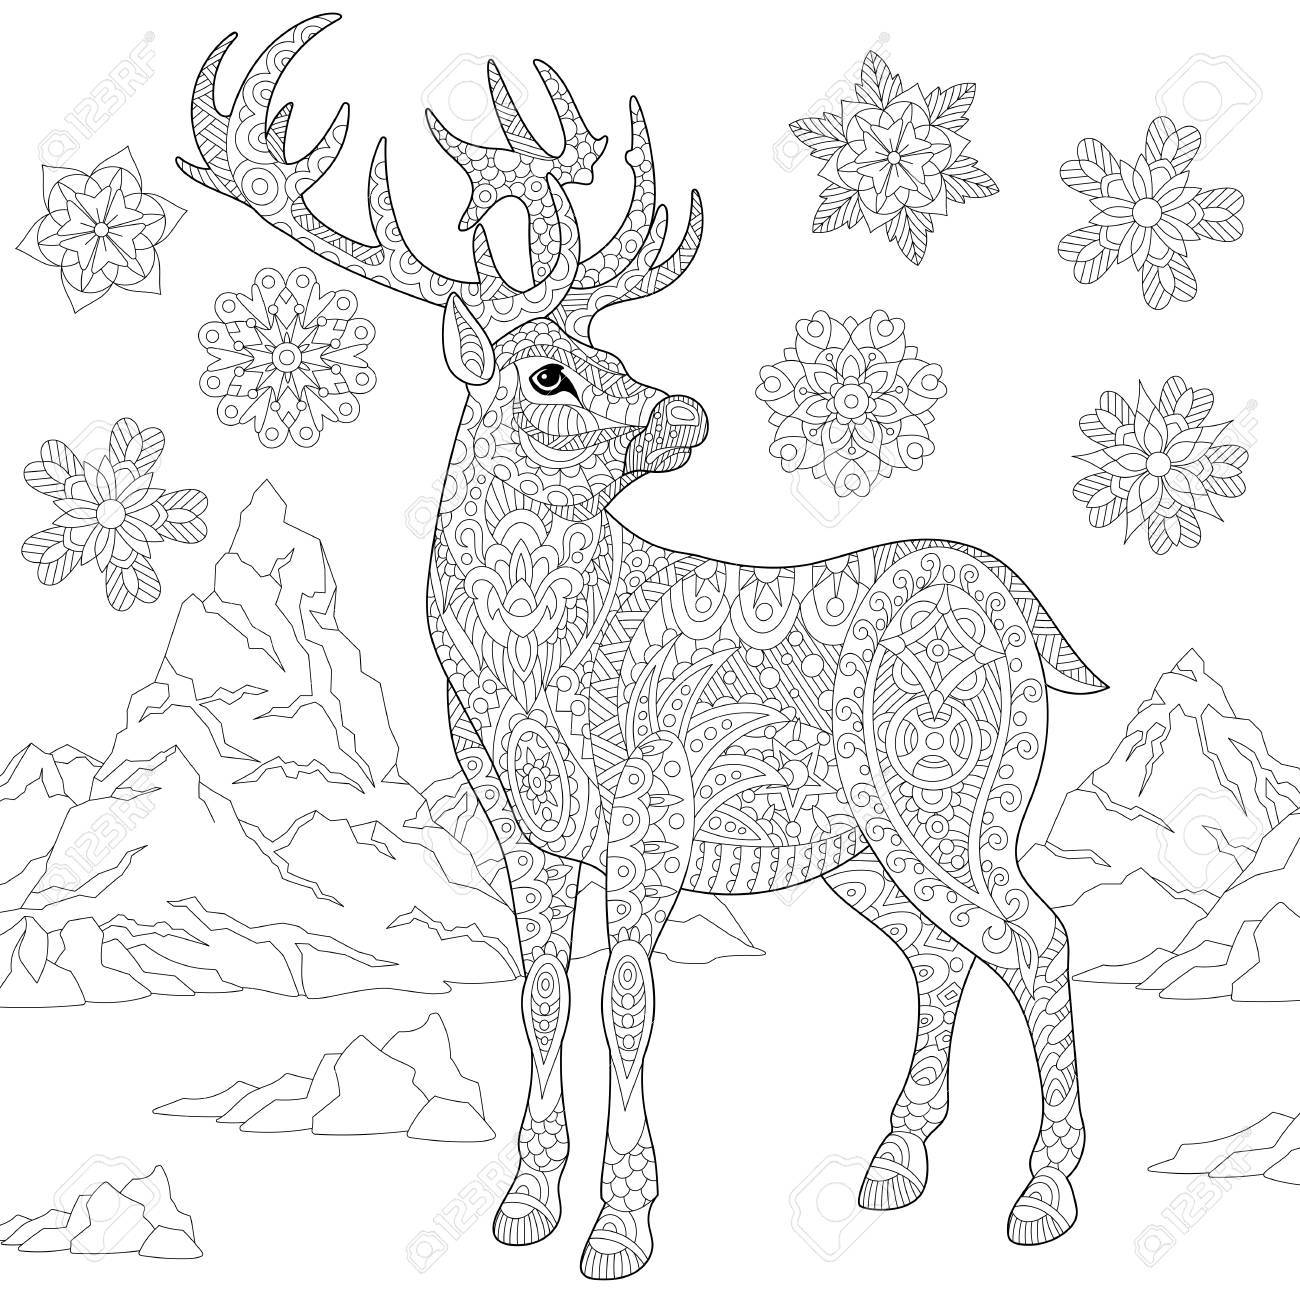 Coloring Page Of Deer Reindeer And Winter Snowflakes Freehand Sketch Drawing For Adult